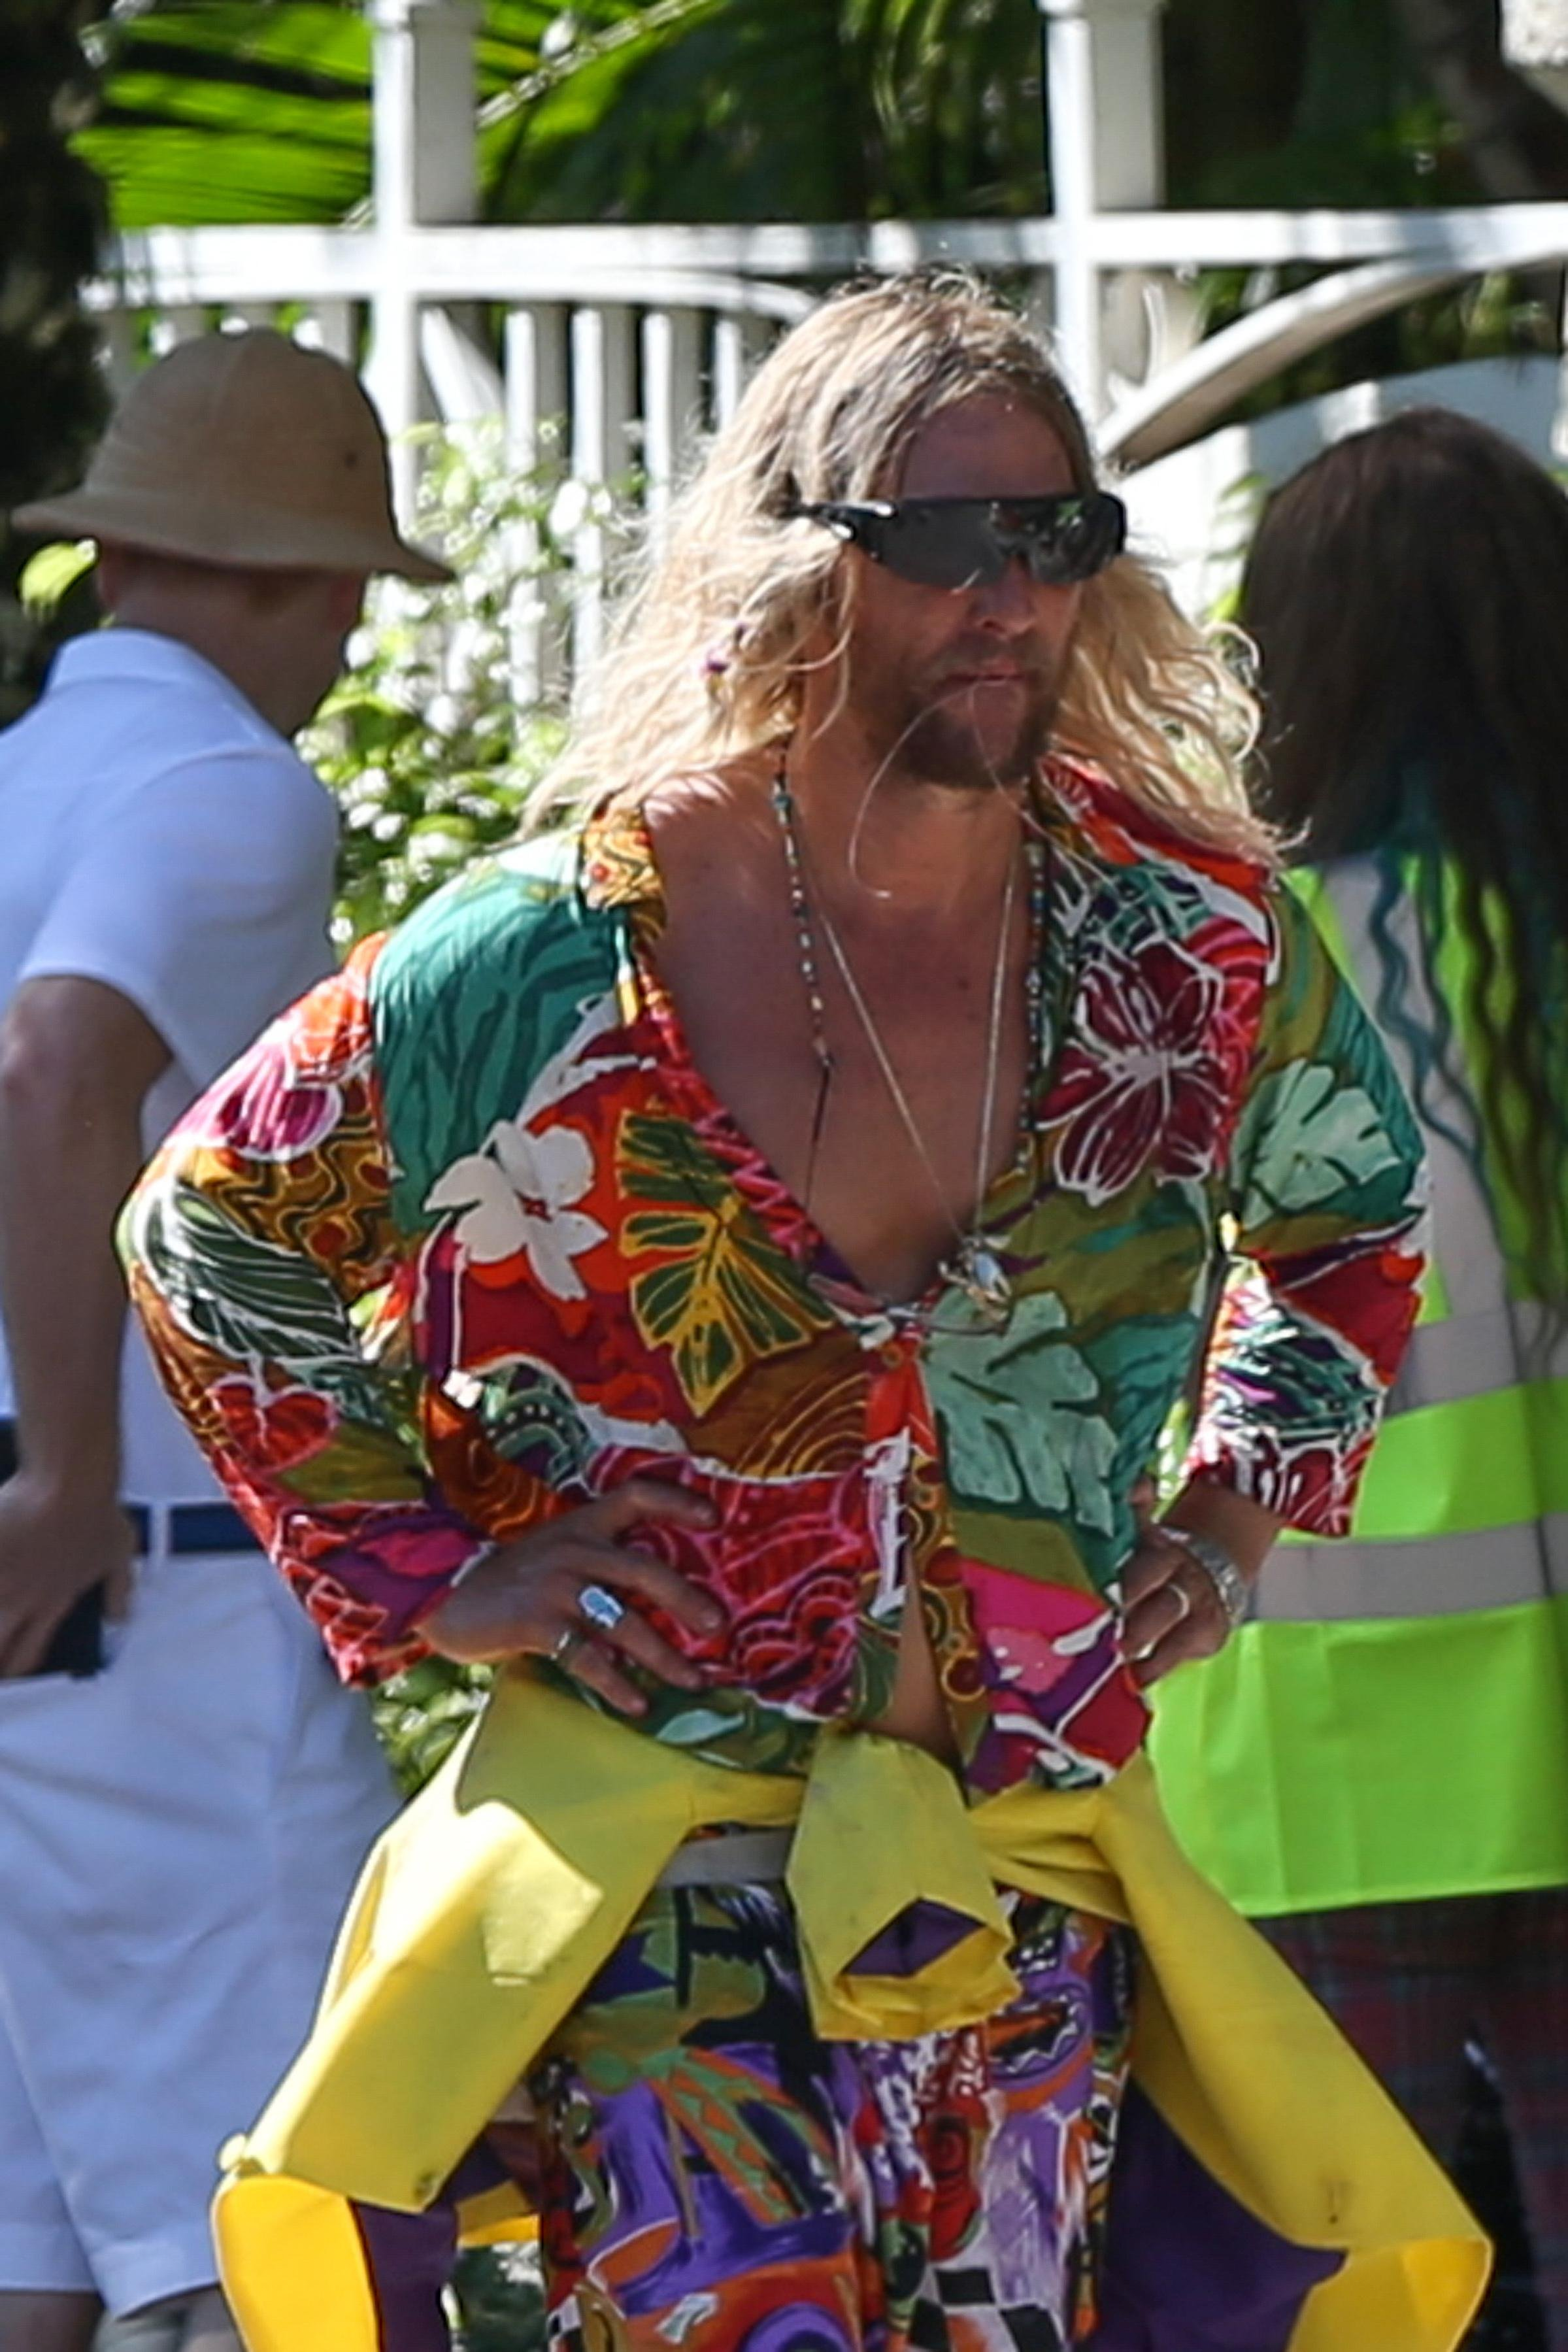 171947, EXCLUSIVE: Matthew McConaughey wears a loud outfit as he is seen in character filming scenes on the set of his last movie 'Beach Bum' in Miami Beach. Miami, Florida - Tuesday November 7, 2017., Image: 354884110, License: Rights-managed, Restrictions: , Model Release: no, Credit line: Profimedia, Pacific coast news